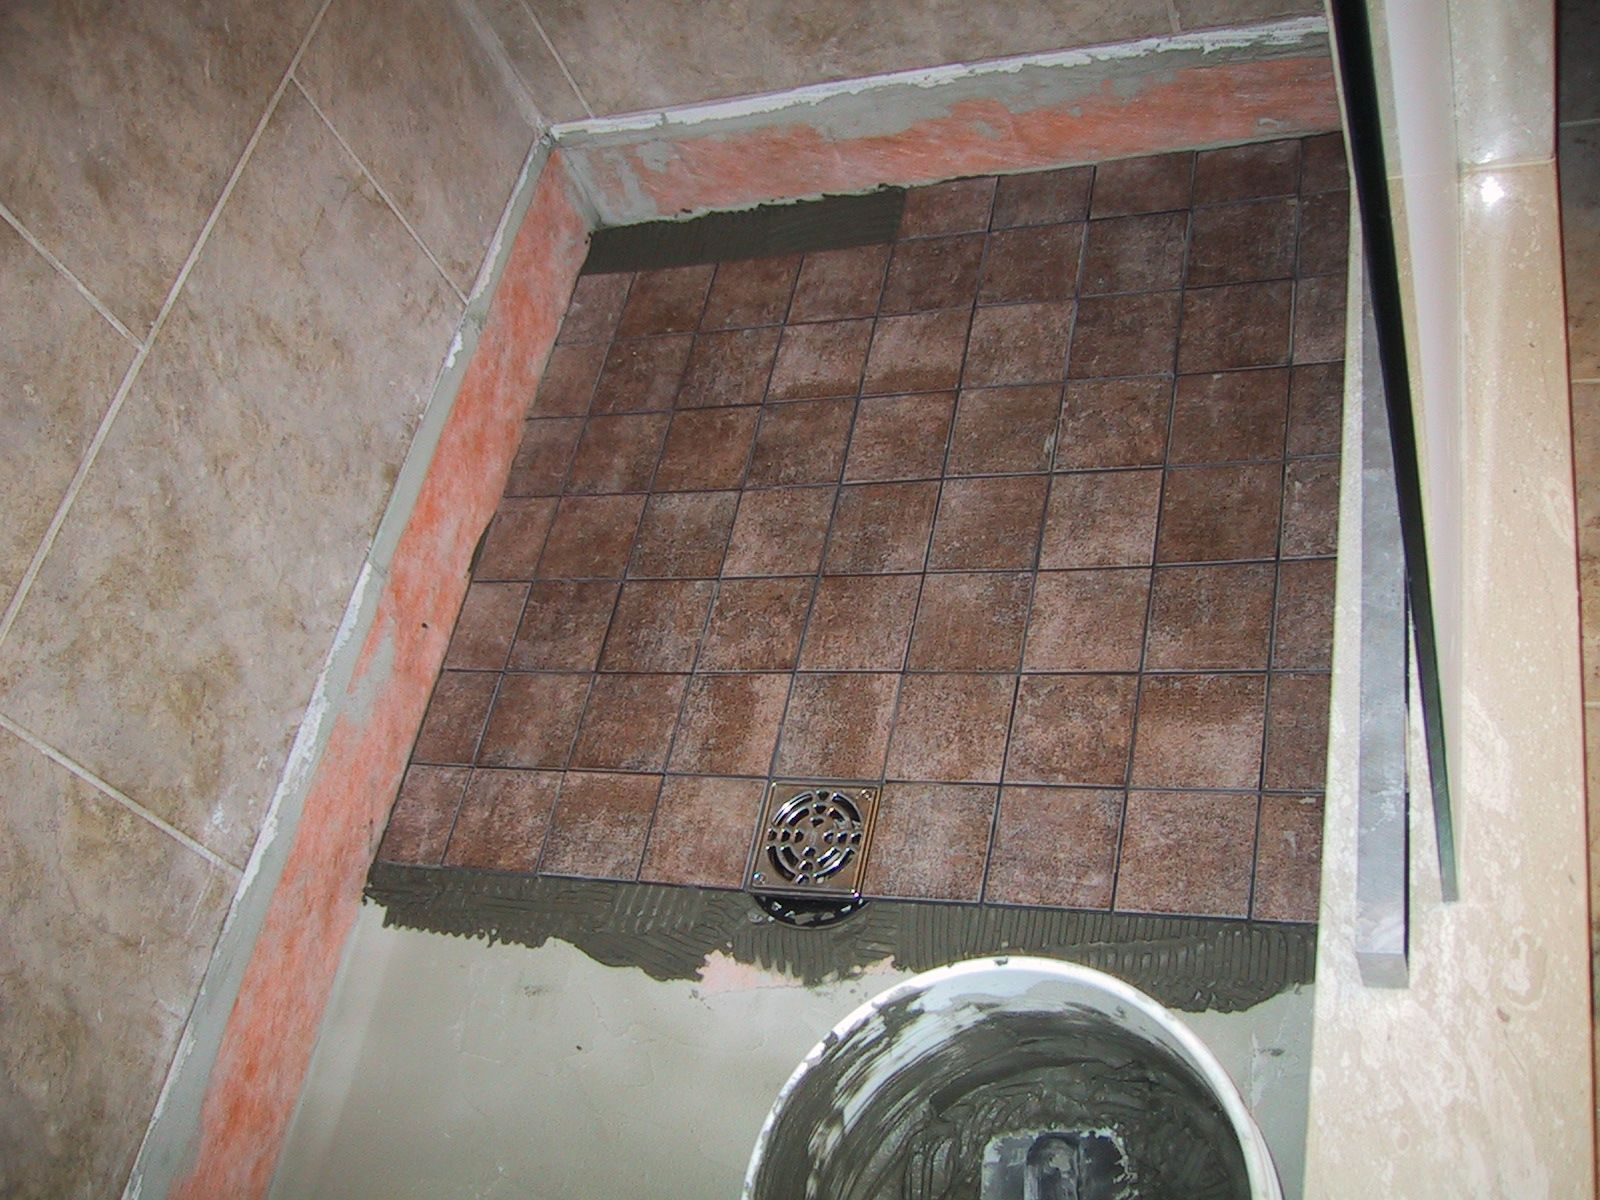 Beautiful Merveilleux Shower Tile Photos Bath And Shower Tile Designs Another Important  Bath And Shower Tile Design